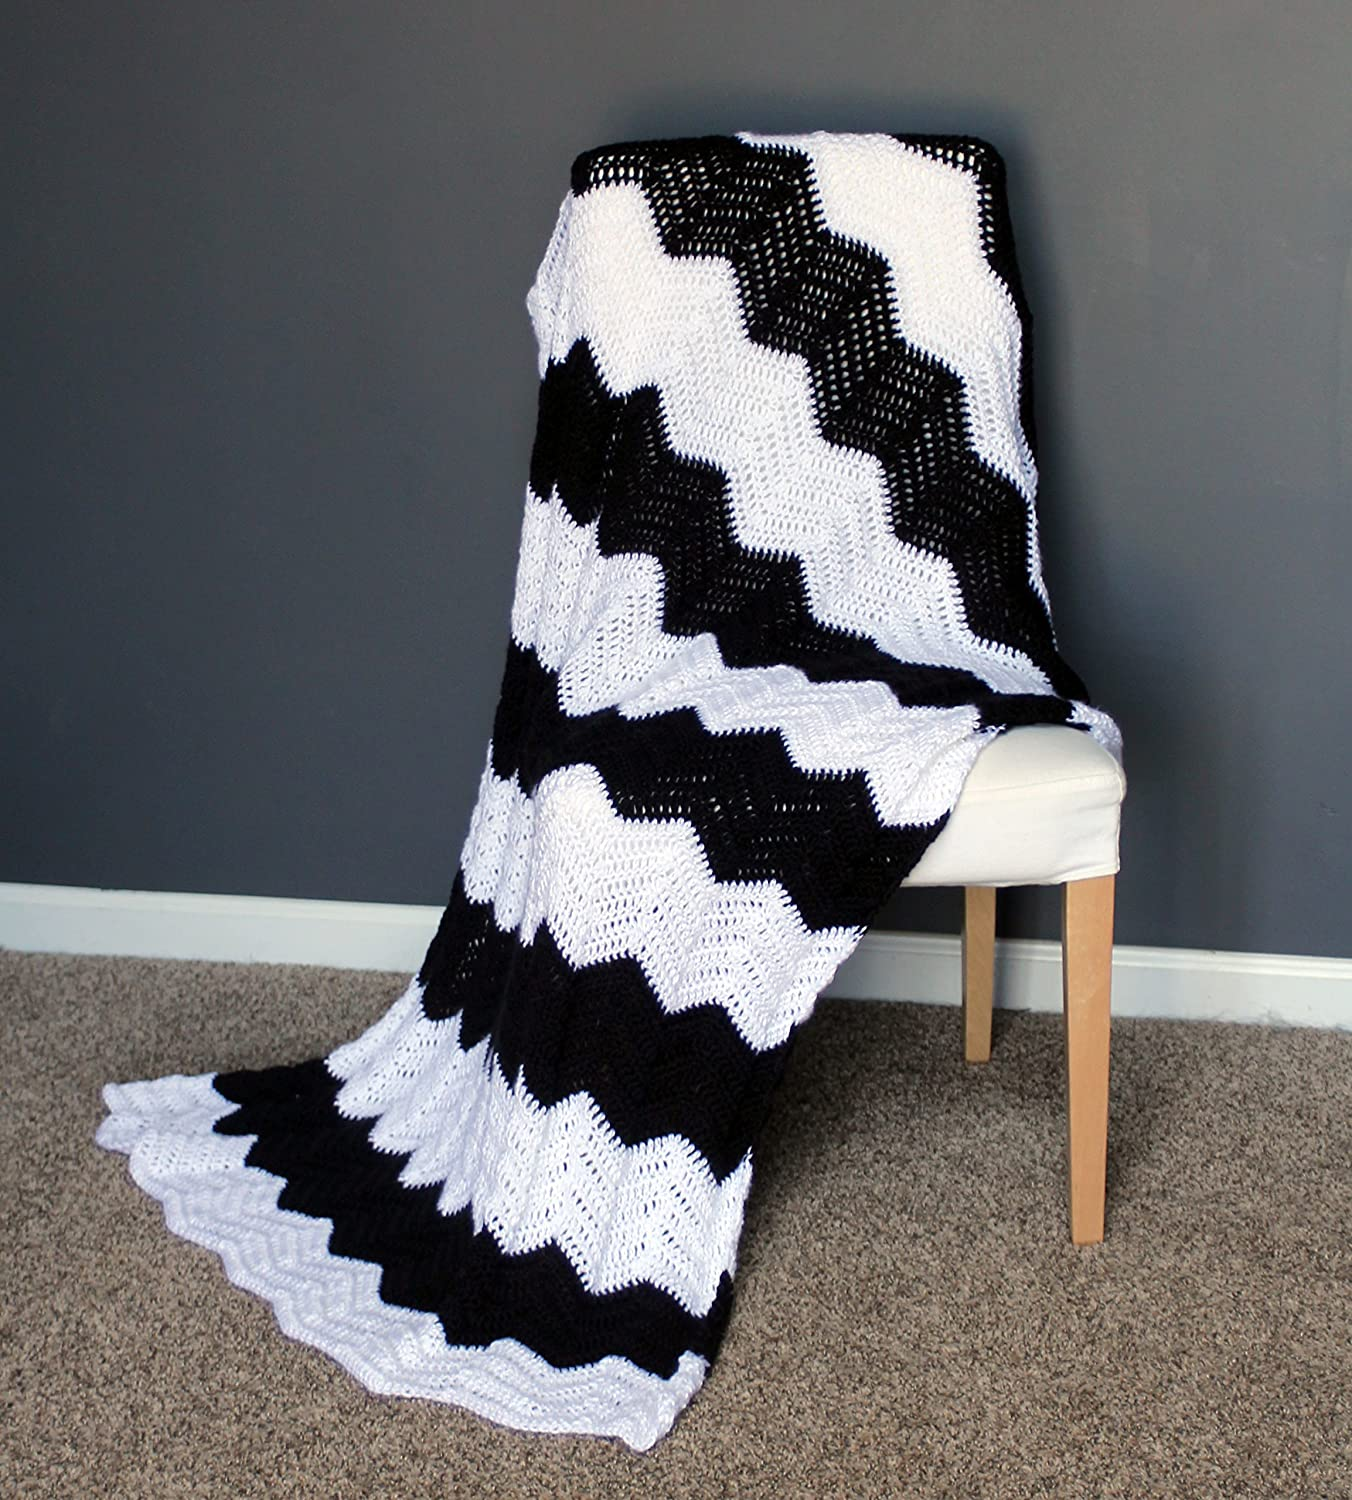 Image of Chevron Afghan Throw Blanket Crochet - Black and White Striped Ripple Zig Zag - Made To Order Home and Kitchen